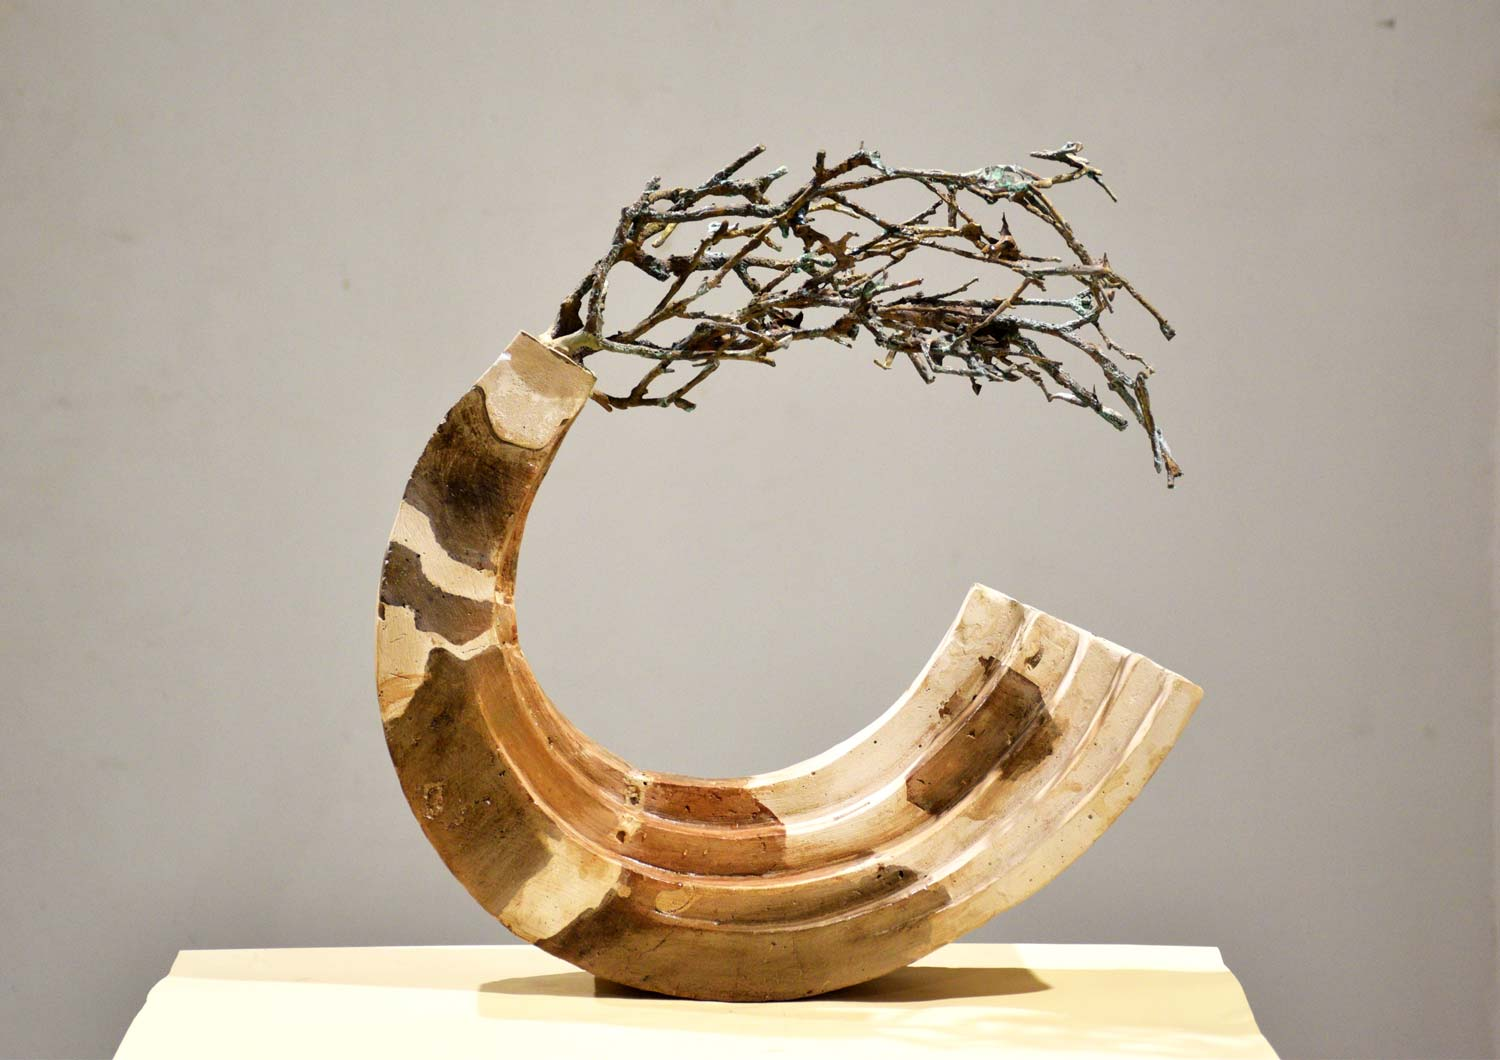 "Contemporary Sculpture with Mixed Media""Life Destroy Another life"" art by Vikas Kumar Yadav"